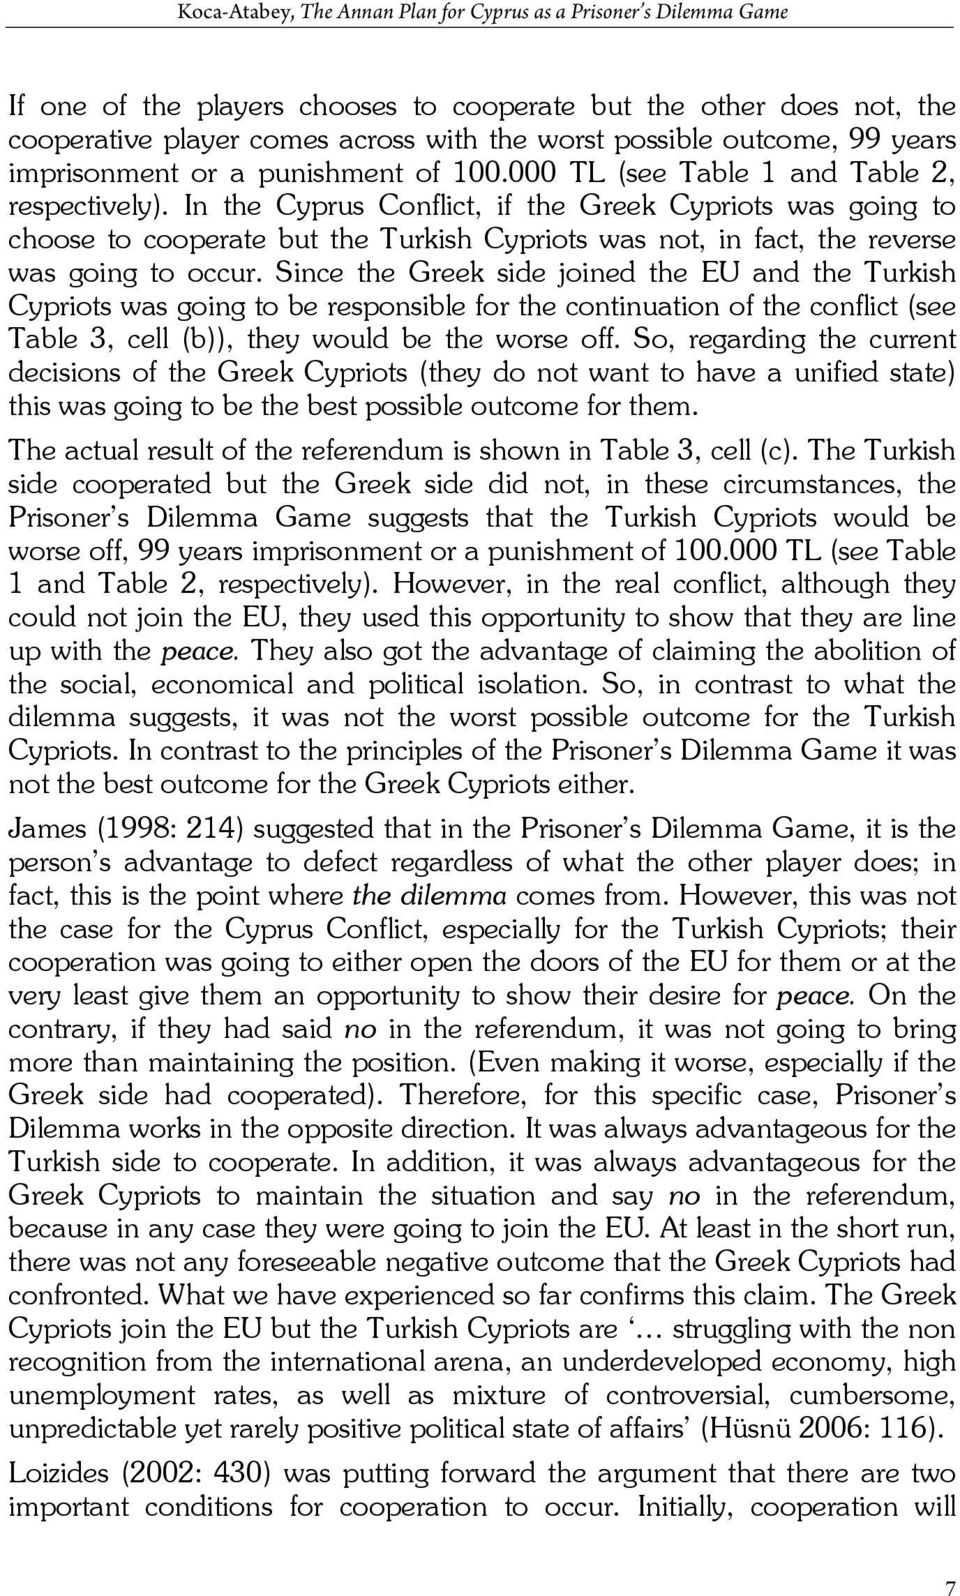 In the Cyprus Conflict, if the Greek Cypriots was going to choose to cooperate but the Turkish Cypriots was not, in fact, the reverse was going to occur.